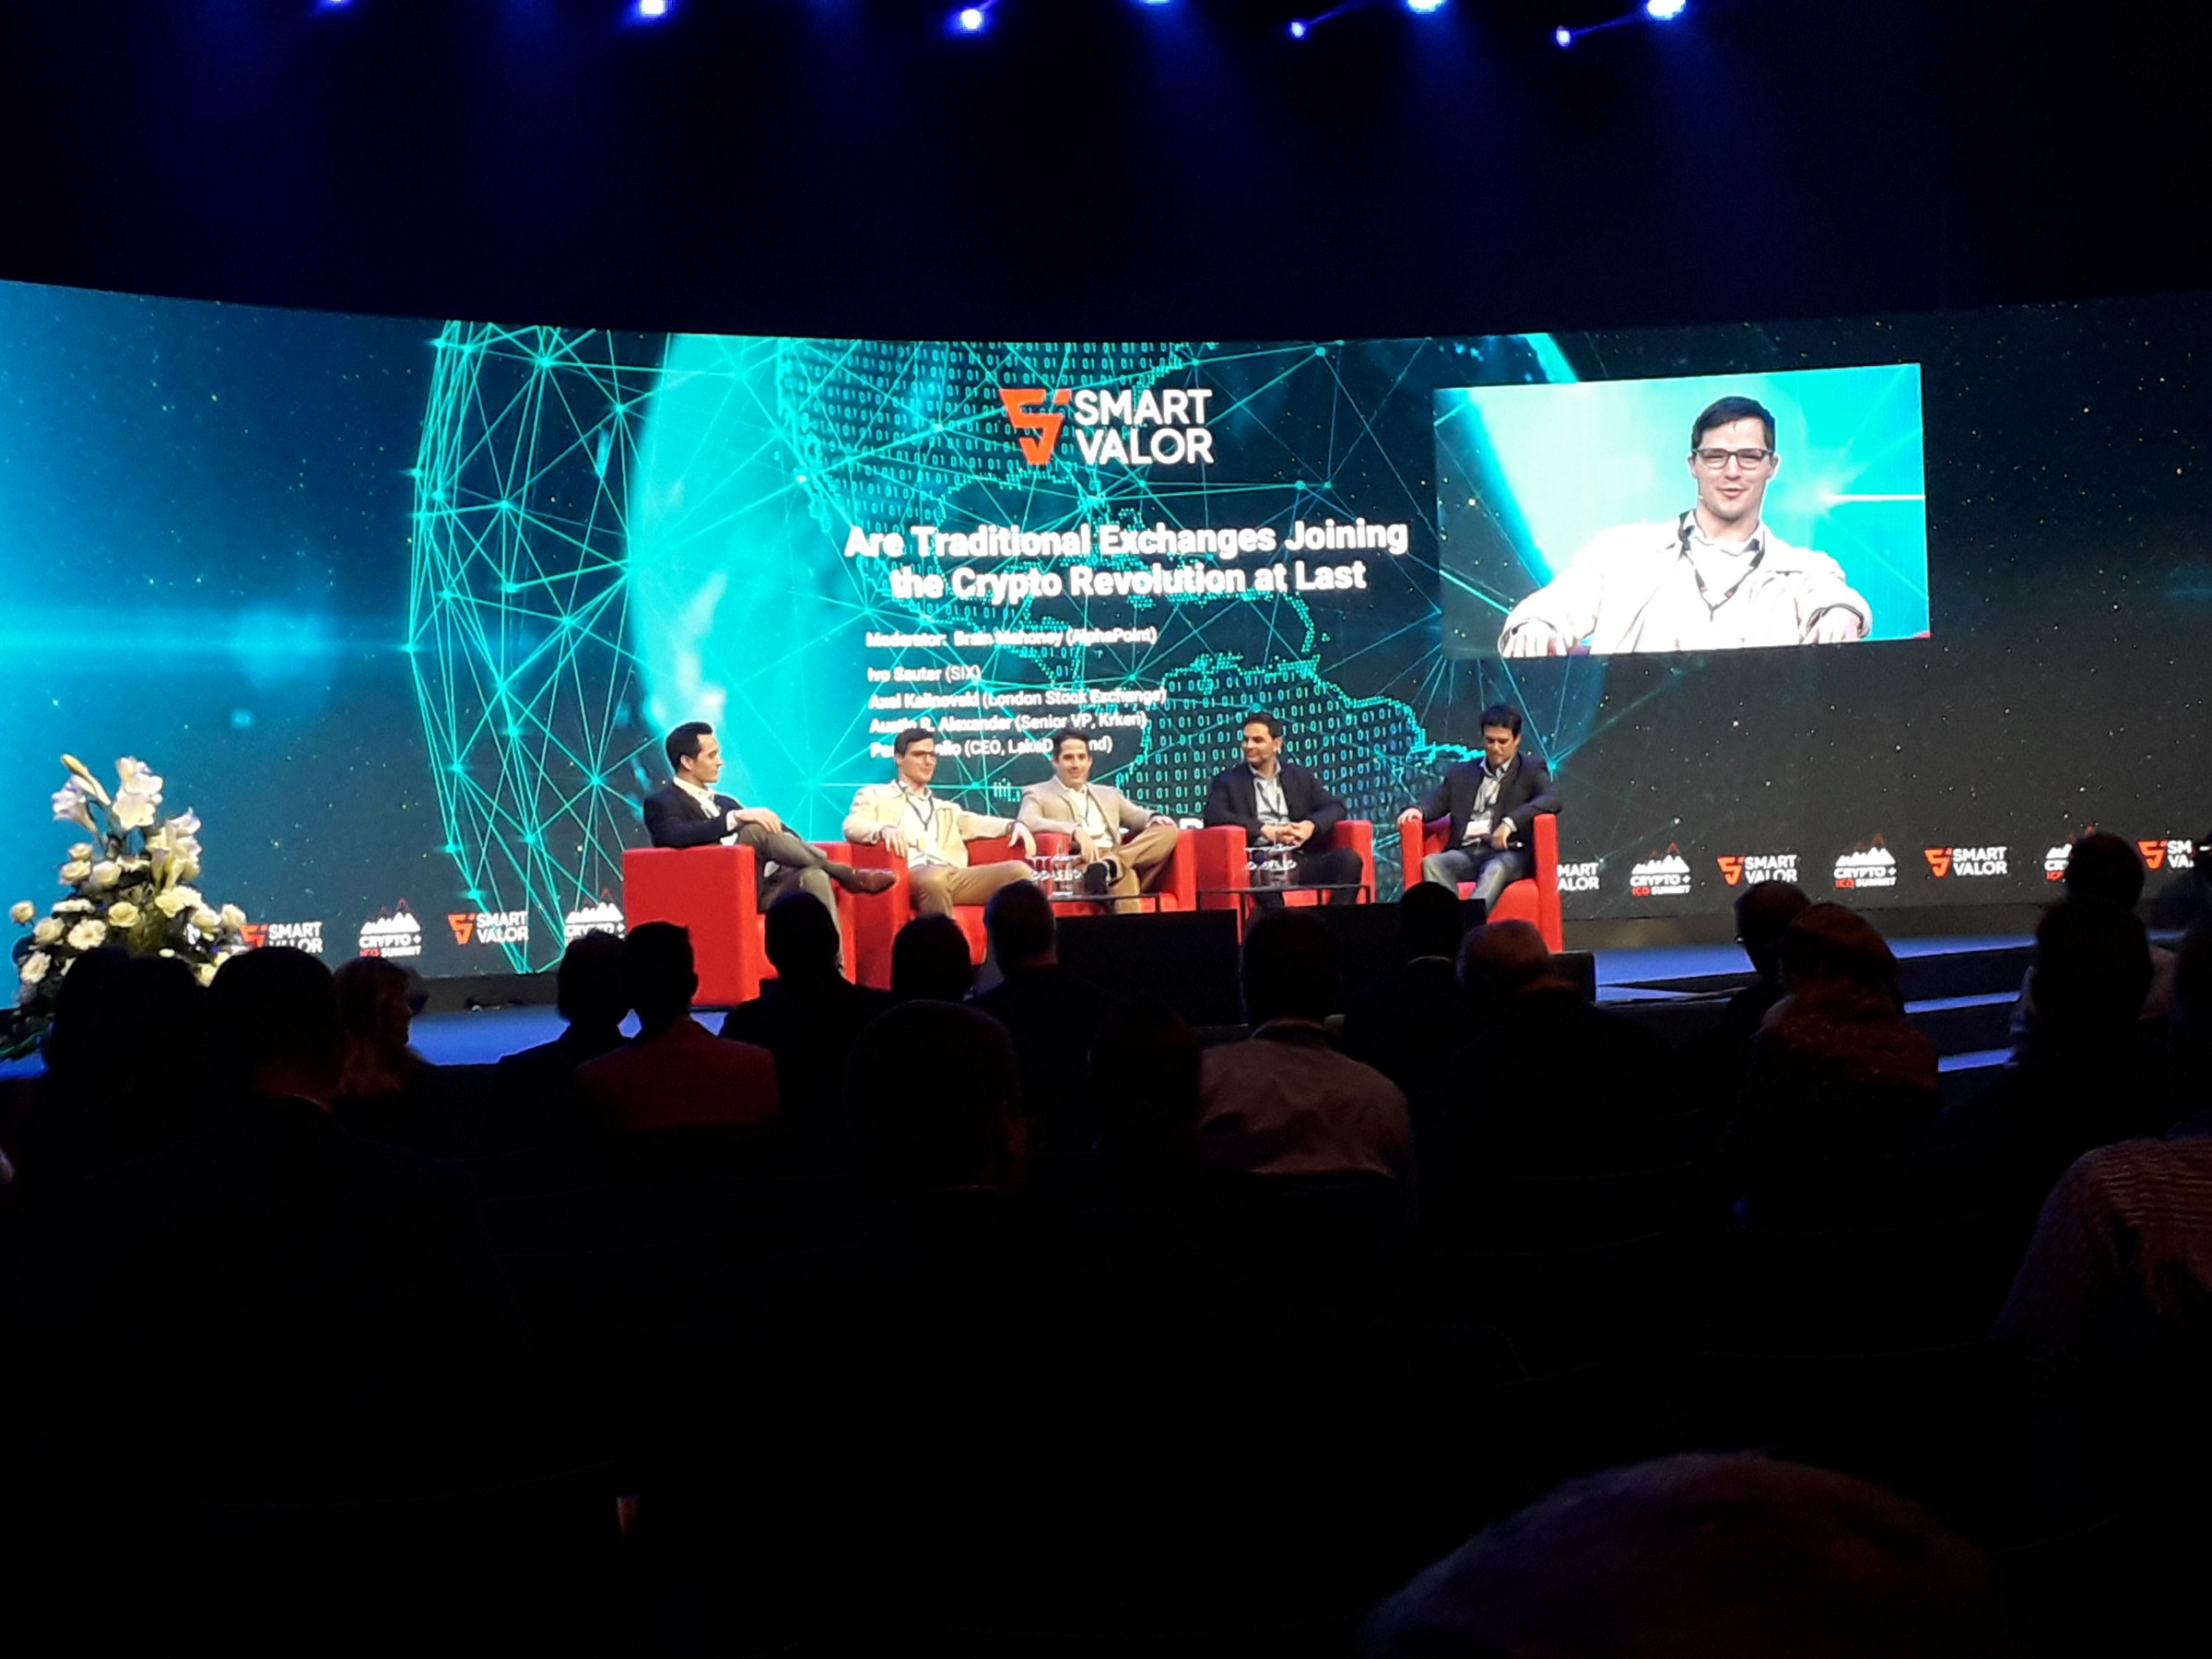 /the-latest-on-security-tokens-from-zurich-s-cryptosummit-be870d929b0f feature image